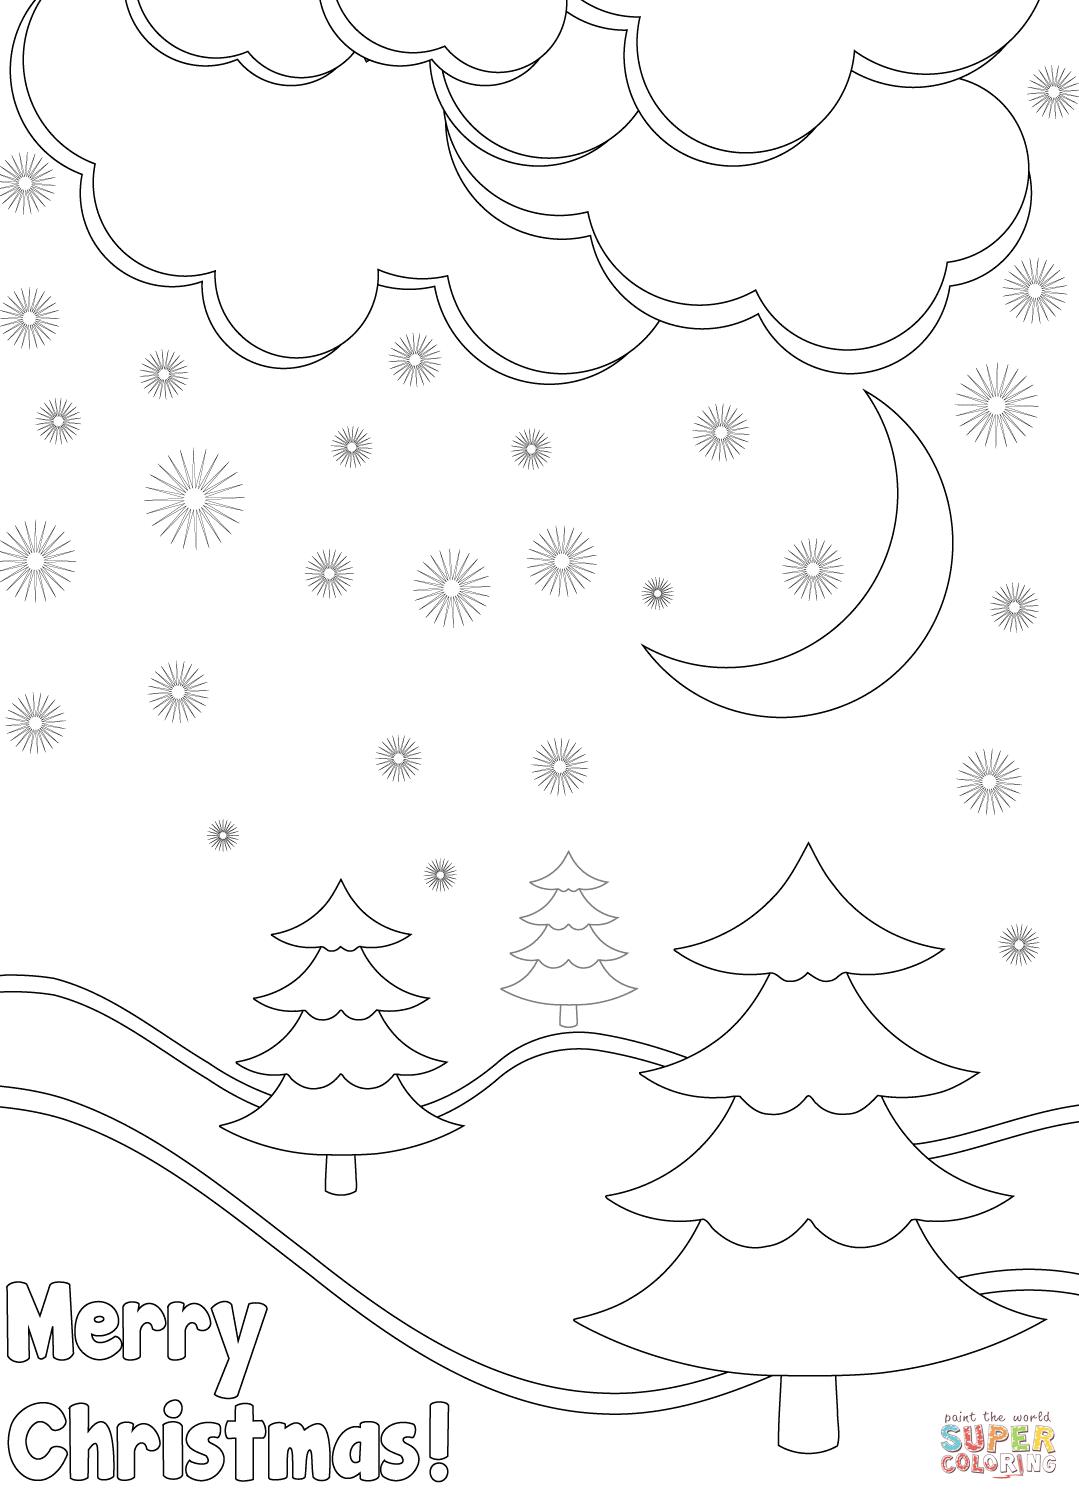 Merry Christmas Cards Coloring Pages With Card Winter Landscape Page Free